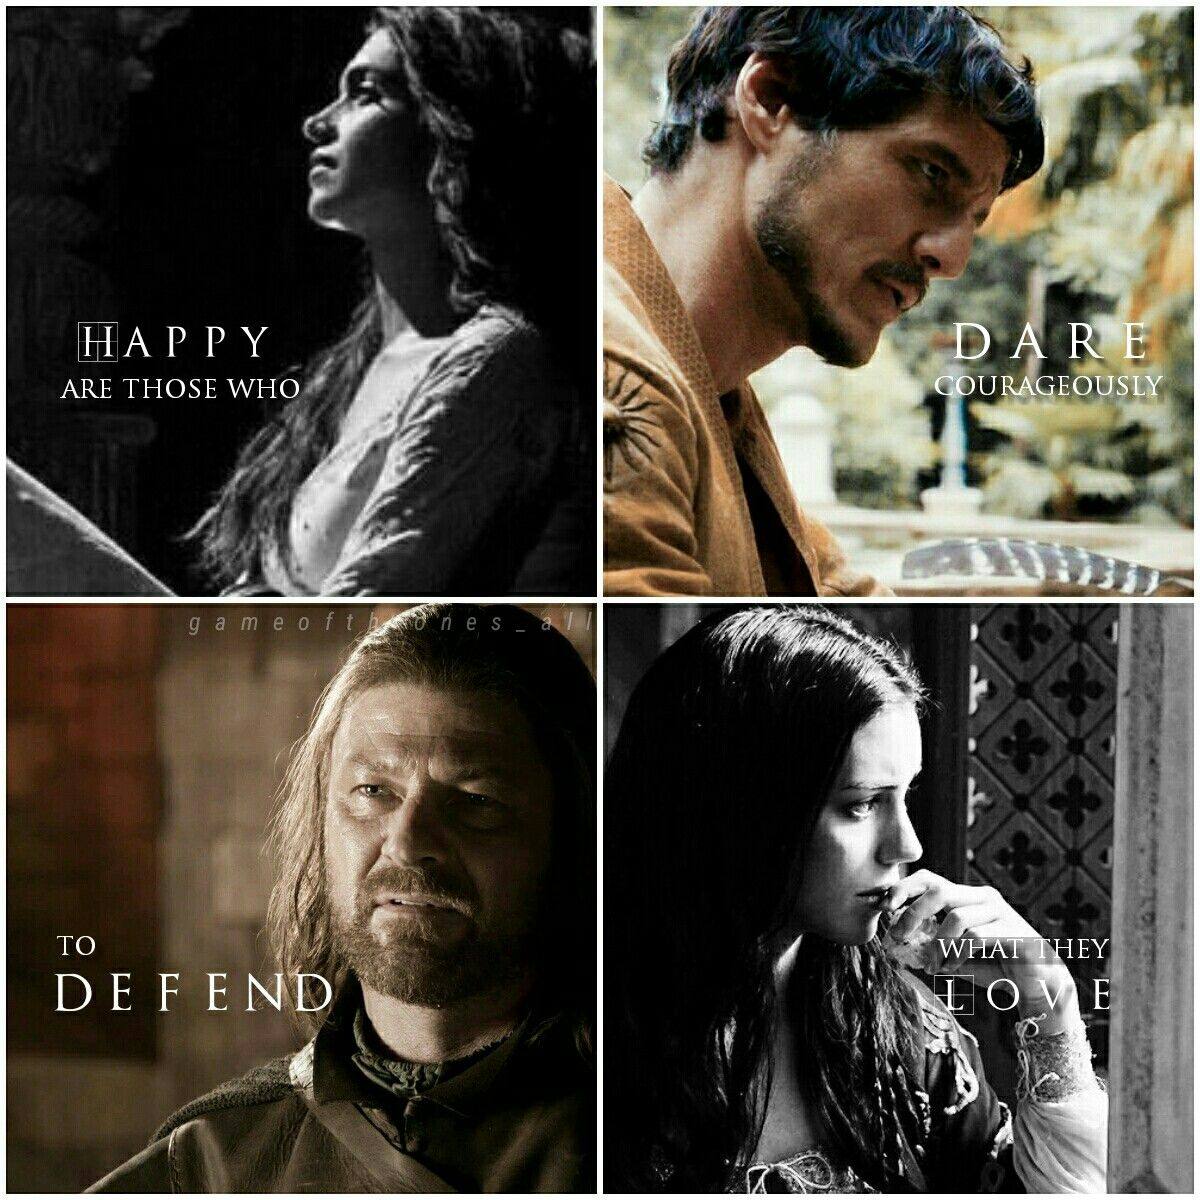 Follow gameofthrones_all IG game of thrones, game of thrones edits ,Oberyn Martell, ellia martell, ned stark, lyanna star, house martell, house stark.deepika padukon, a song of ice and fire, edit